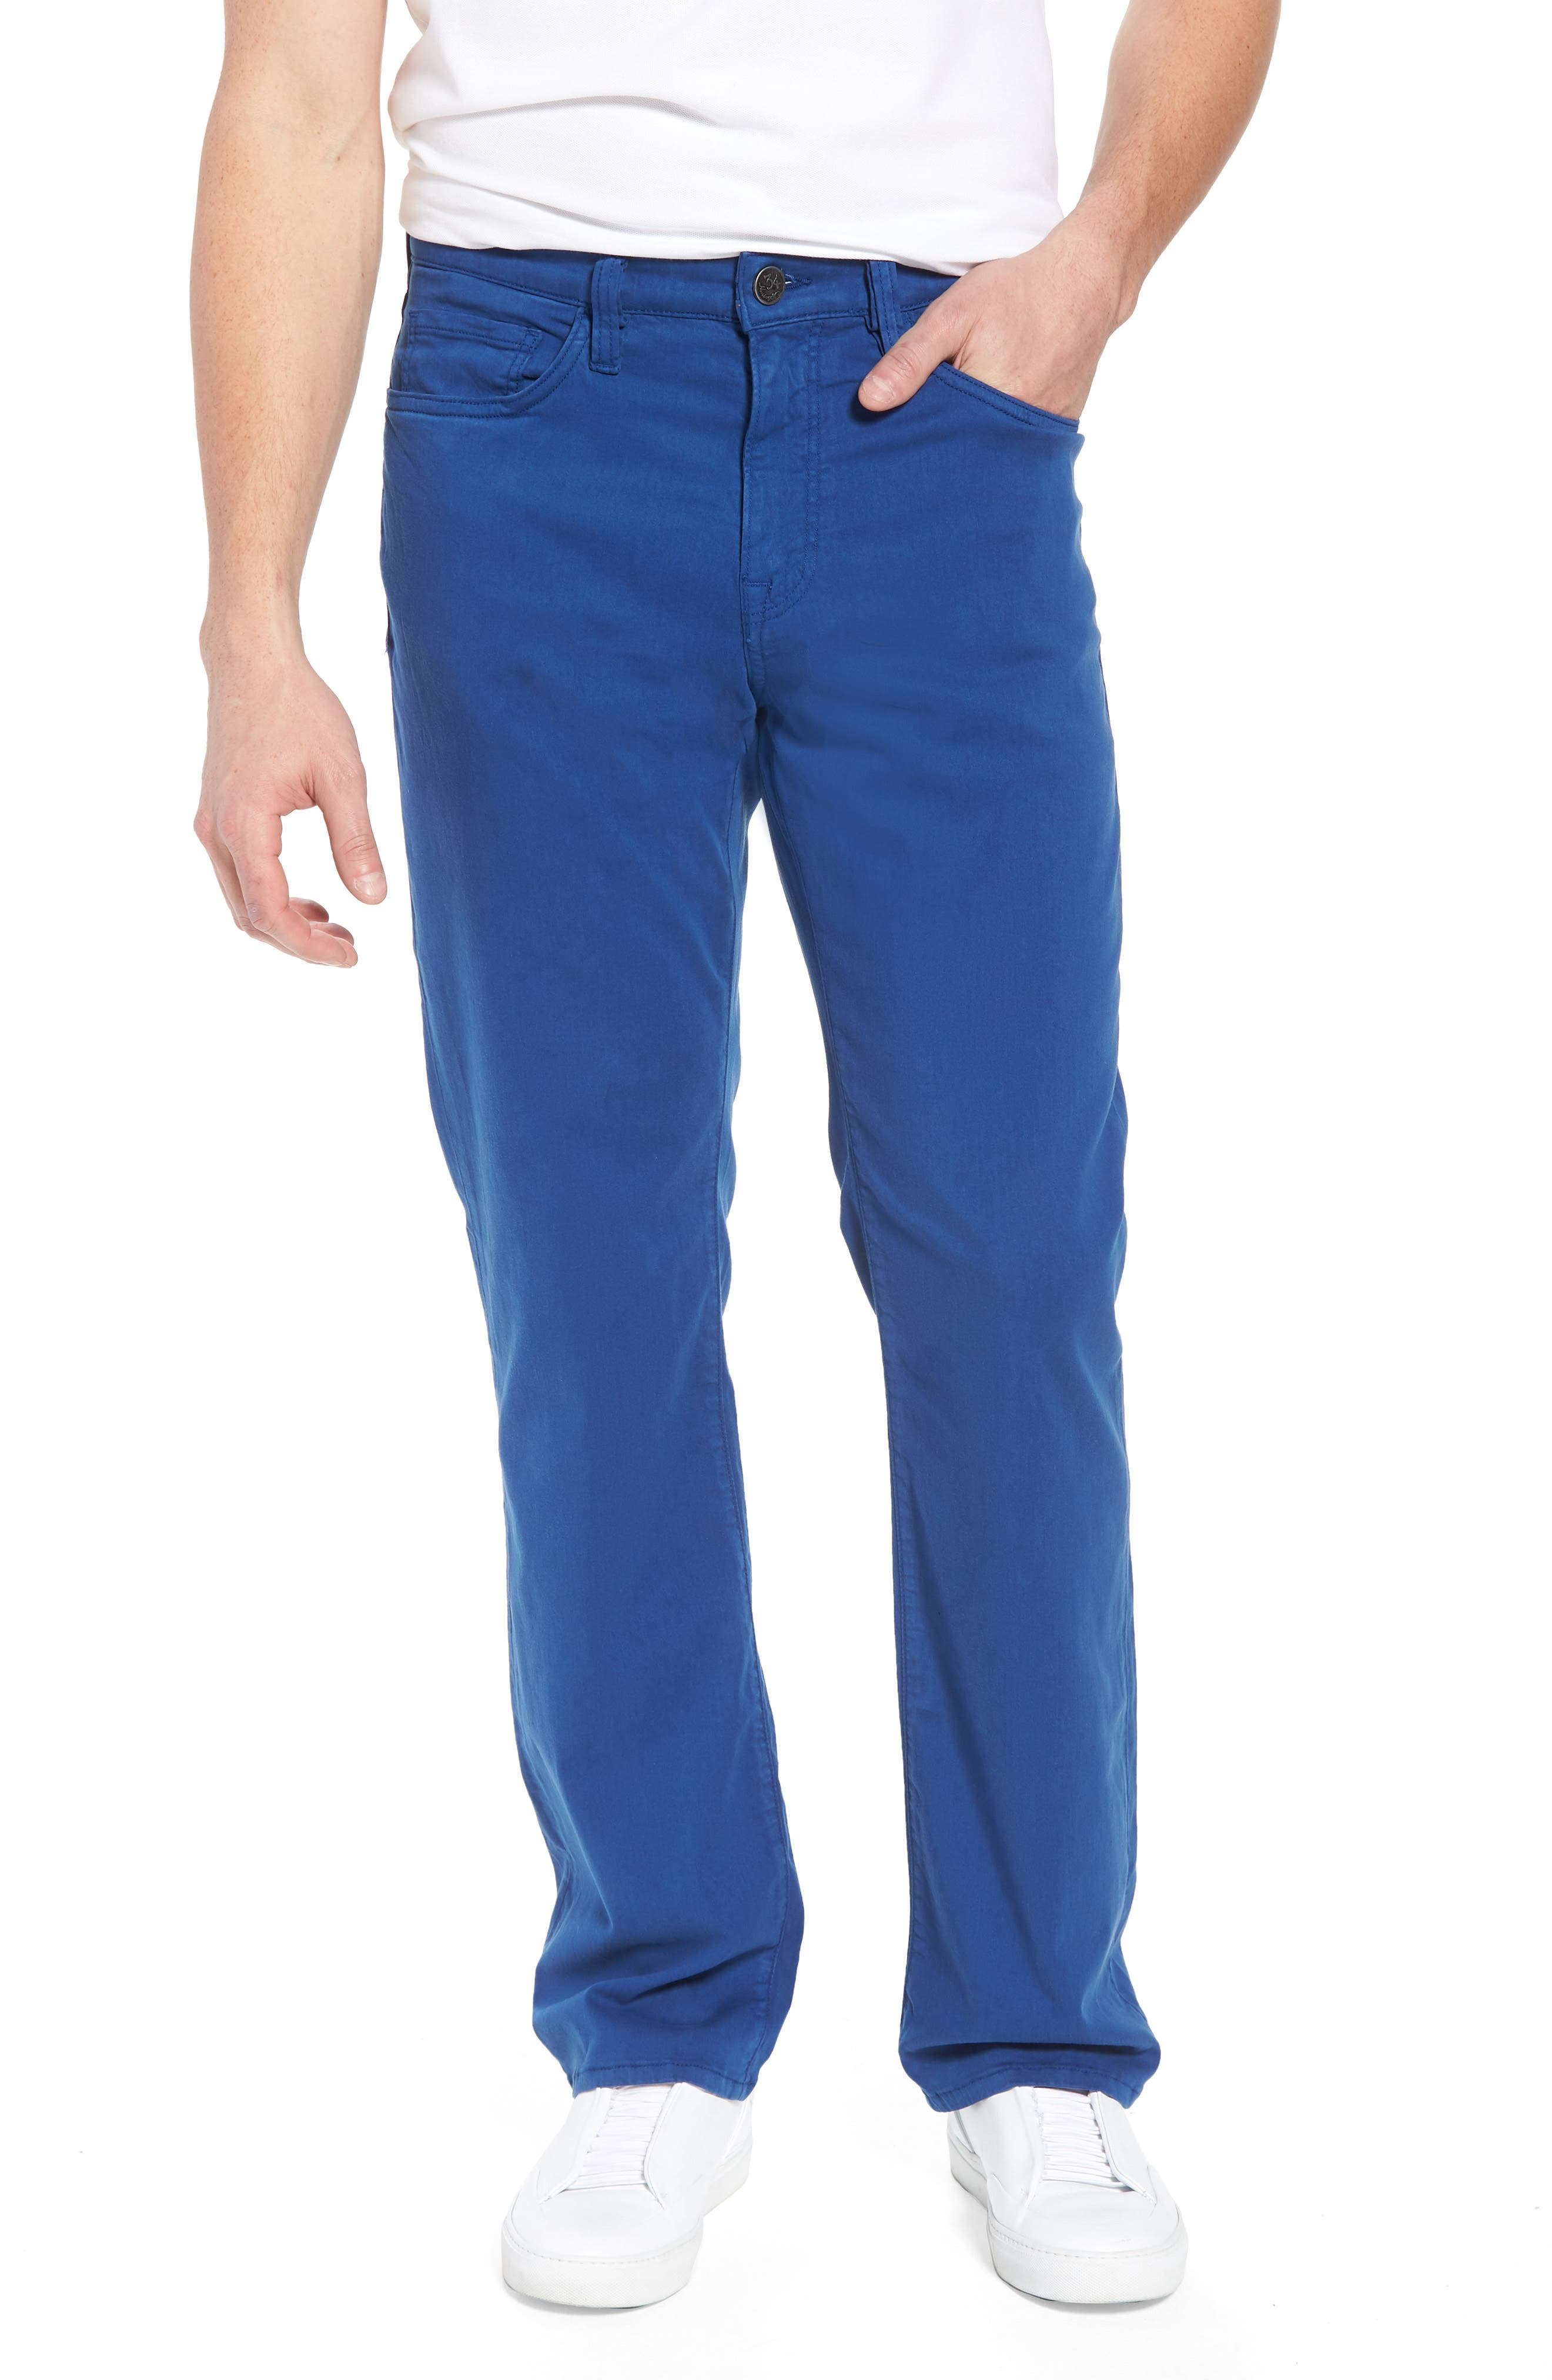 Charisma Relaxed Fit Jeans,                             Main thumbnail 1, color,                             ROYAL TWILL